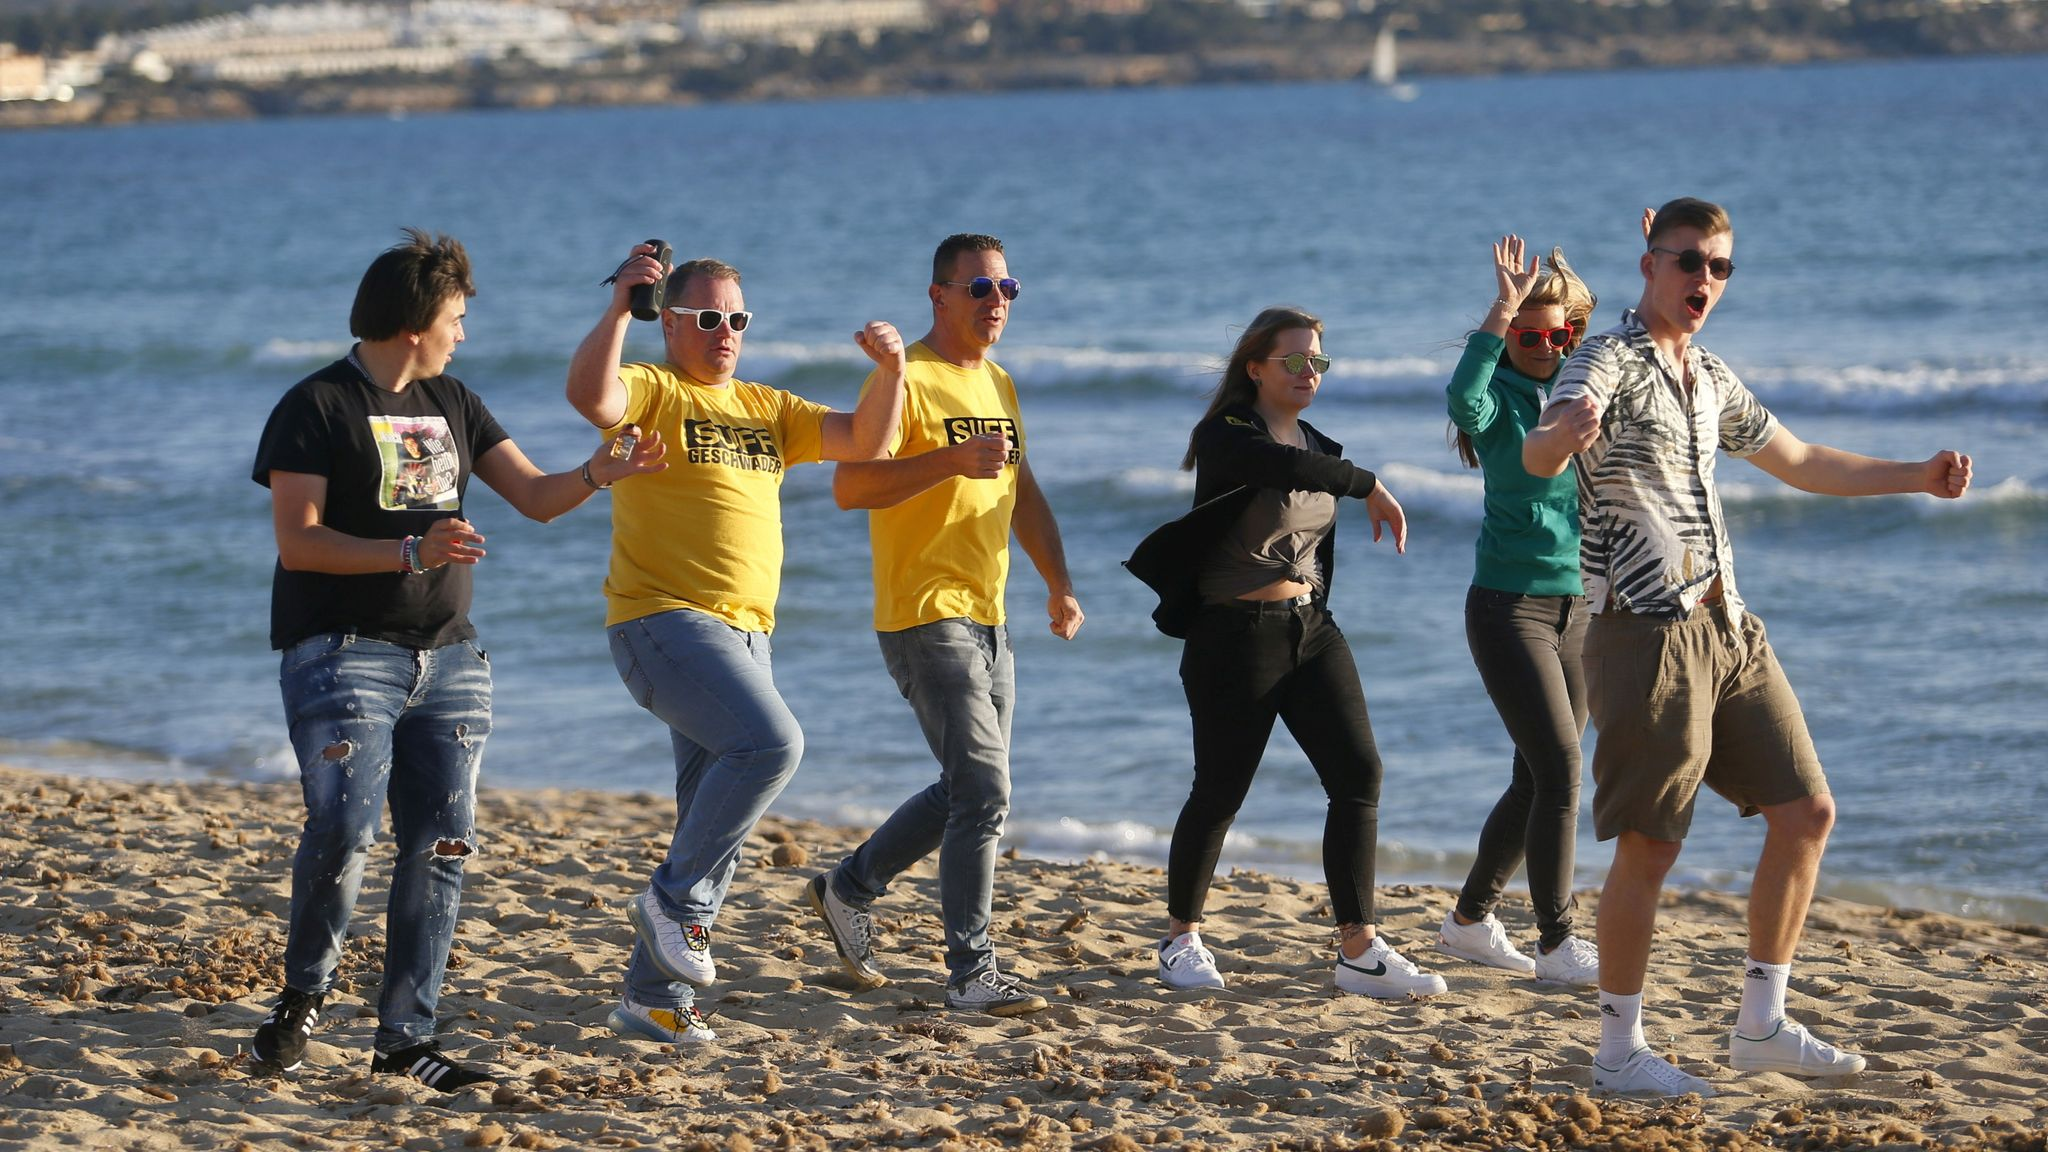 COVID-19: Spain hopes to see summer boost in tourism as German tourists flock to Balearic Islands